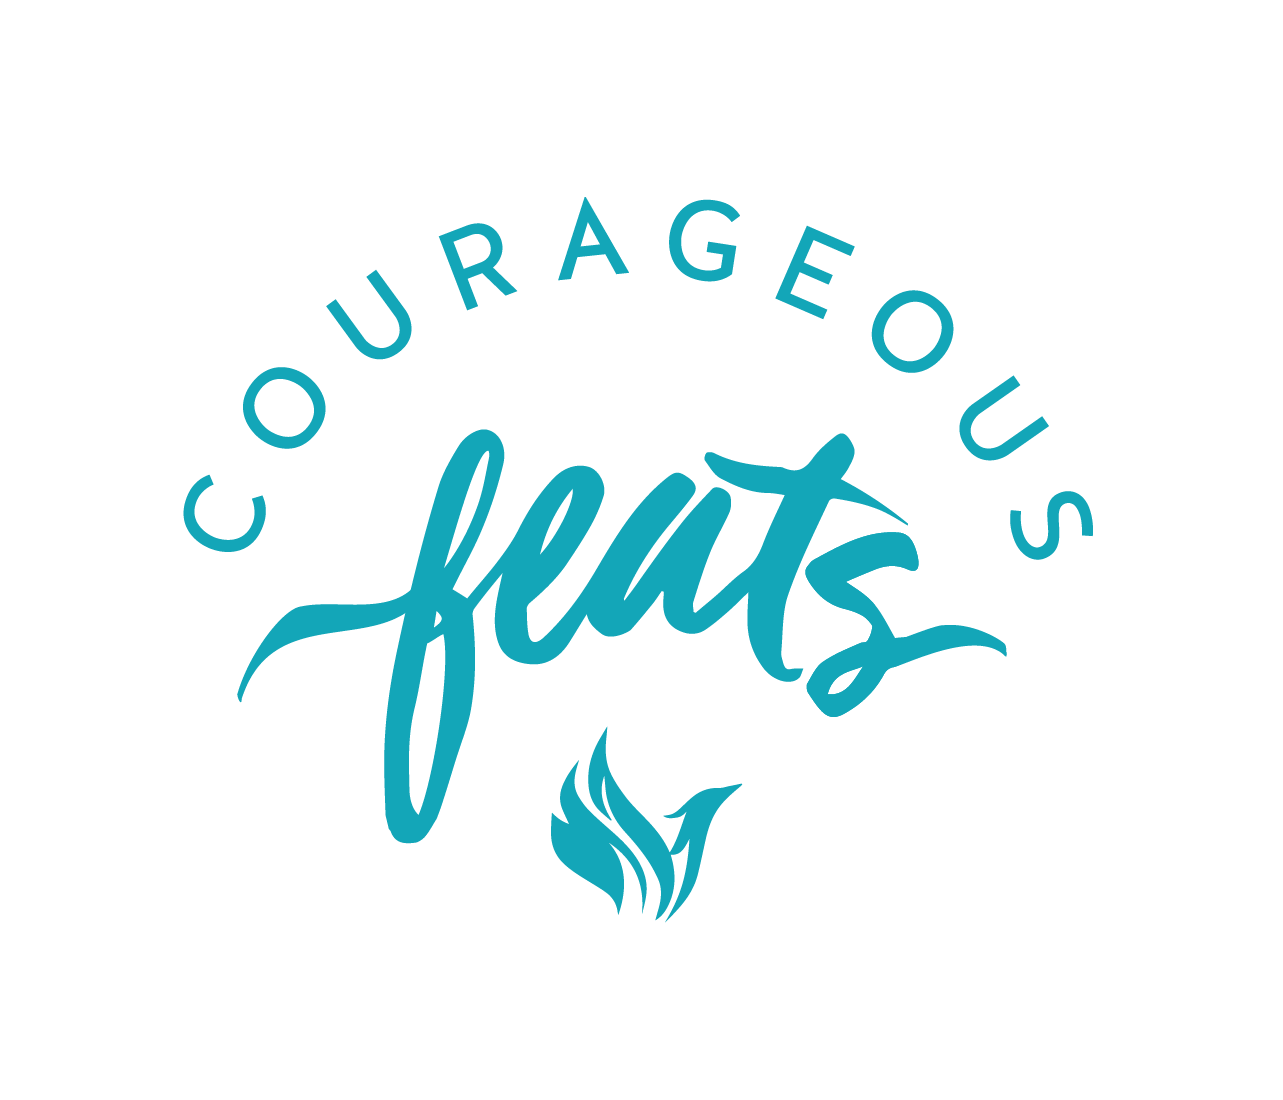 Courageous Feats